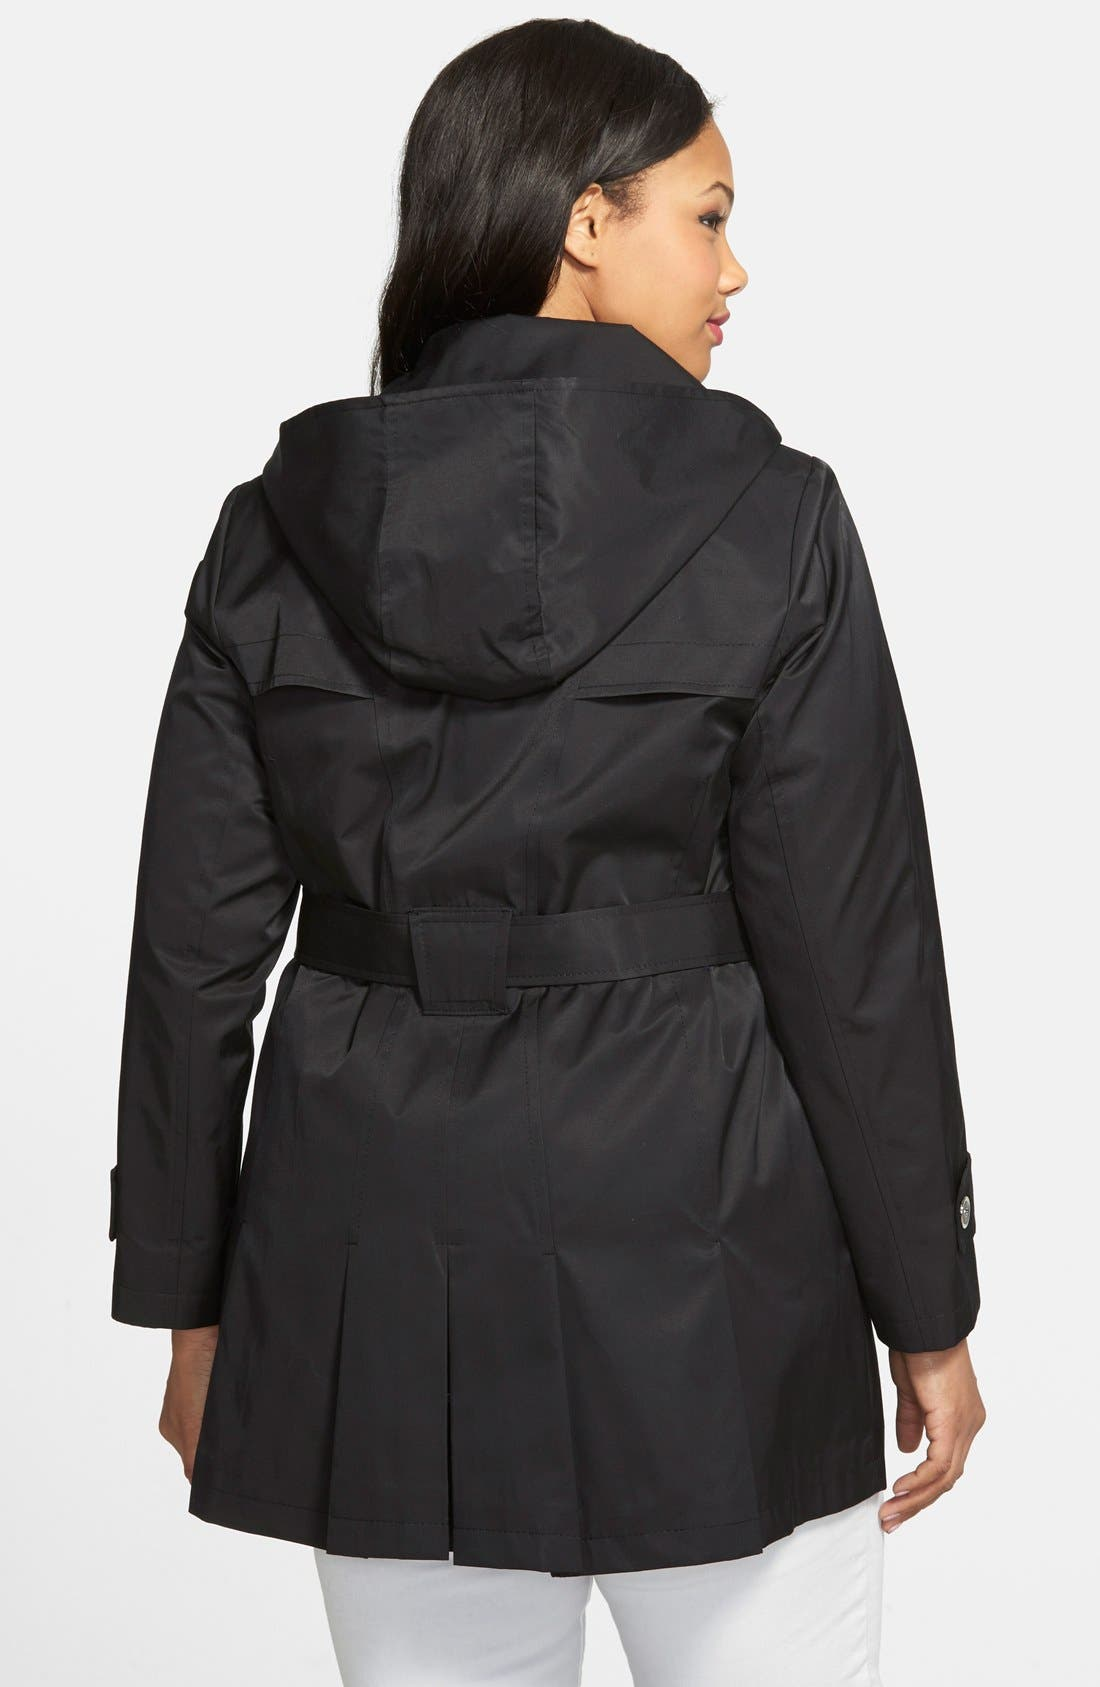 'Scarpa' Single Breasted Trench Coat,                             Alternate thumbnail 13, color,